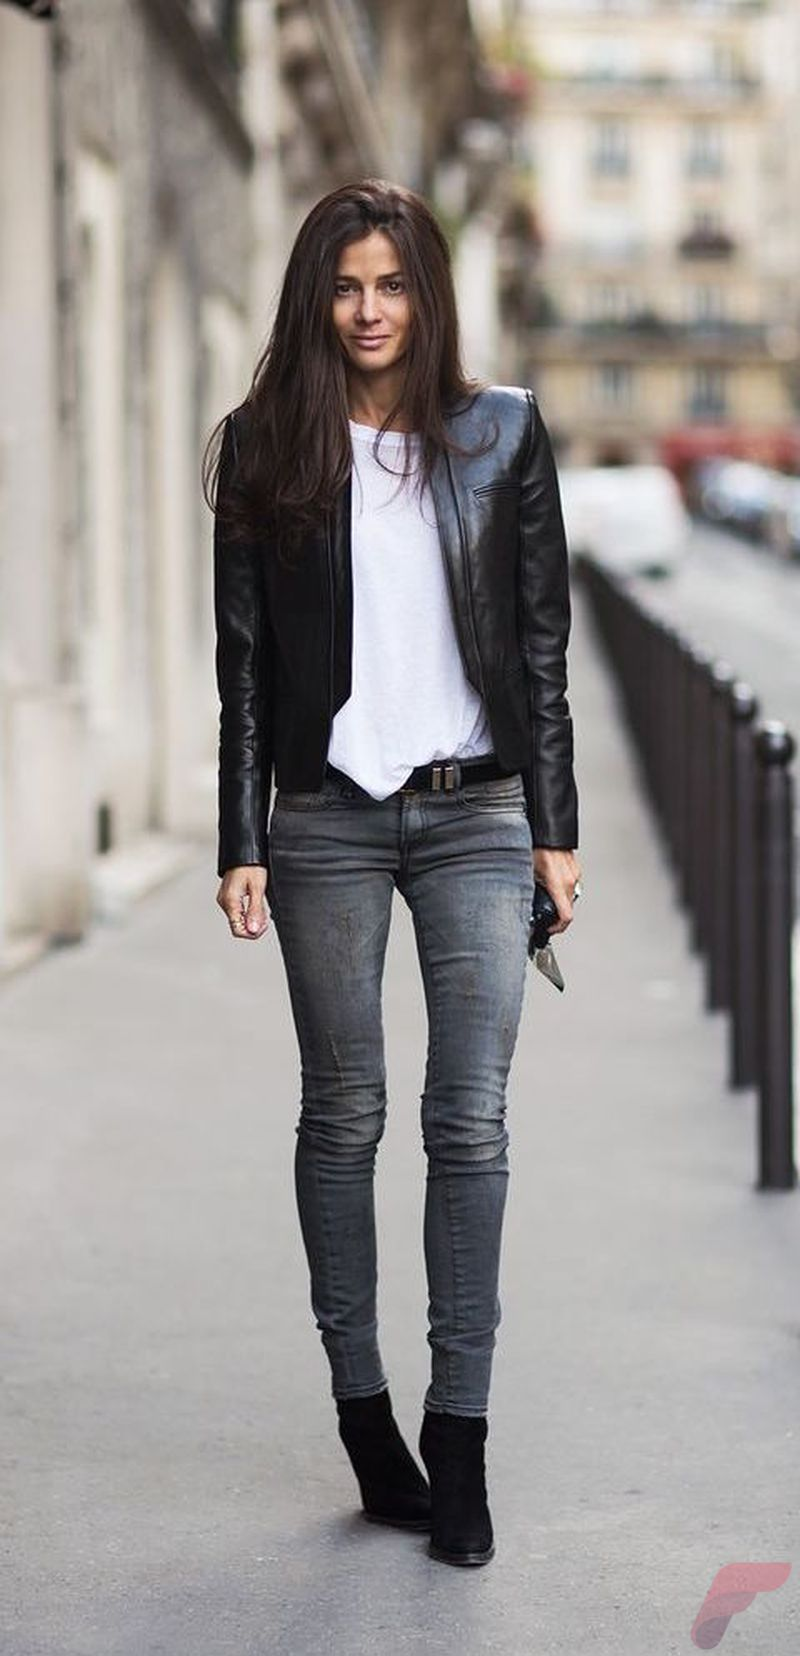 Black Leather Jacket Outfit 18 Fashion Best